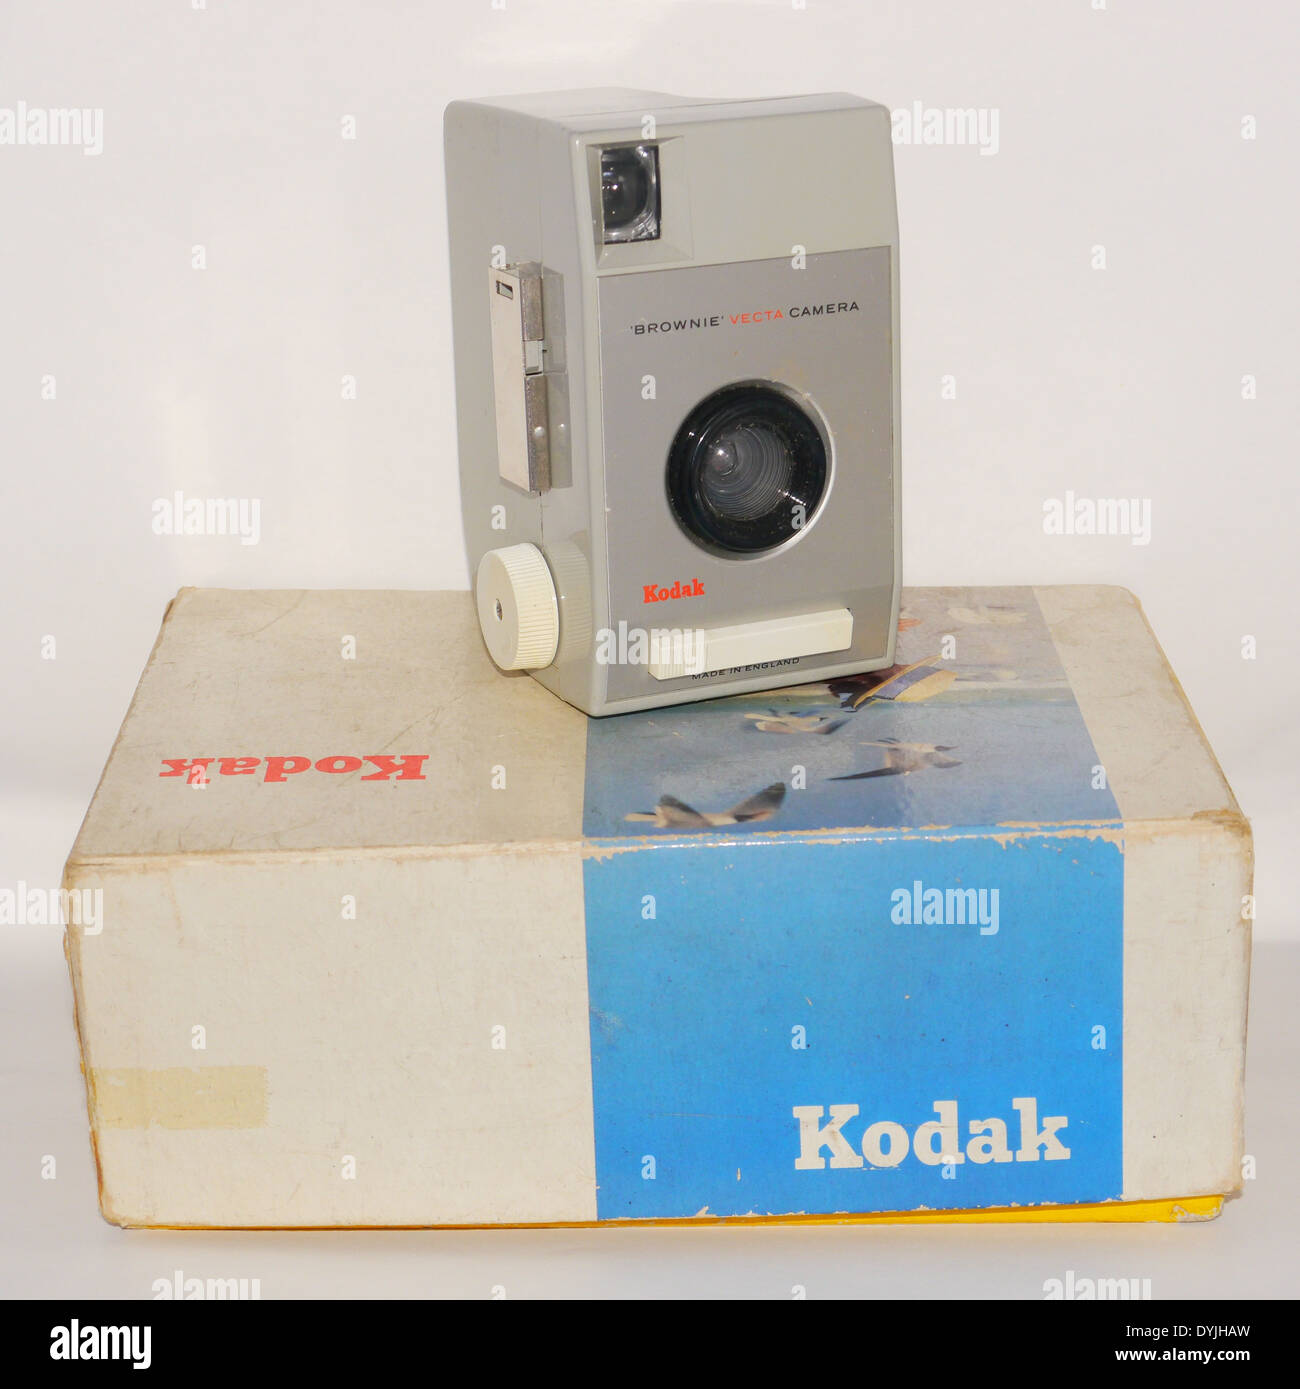 Kodak Brownie 127 film Vecta camera with original box - front view on white background - colour - Stock Image